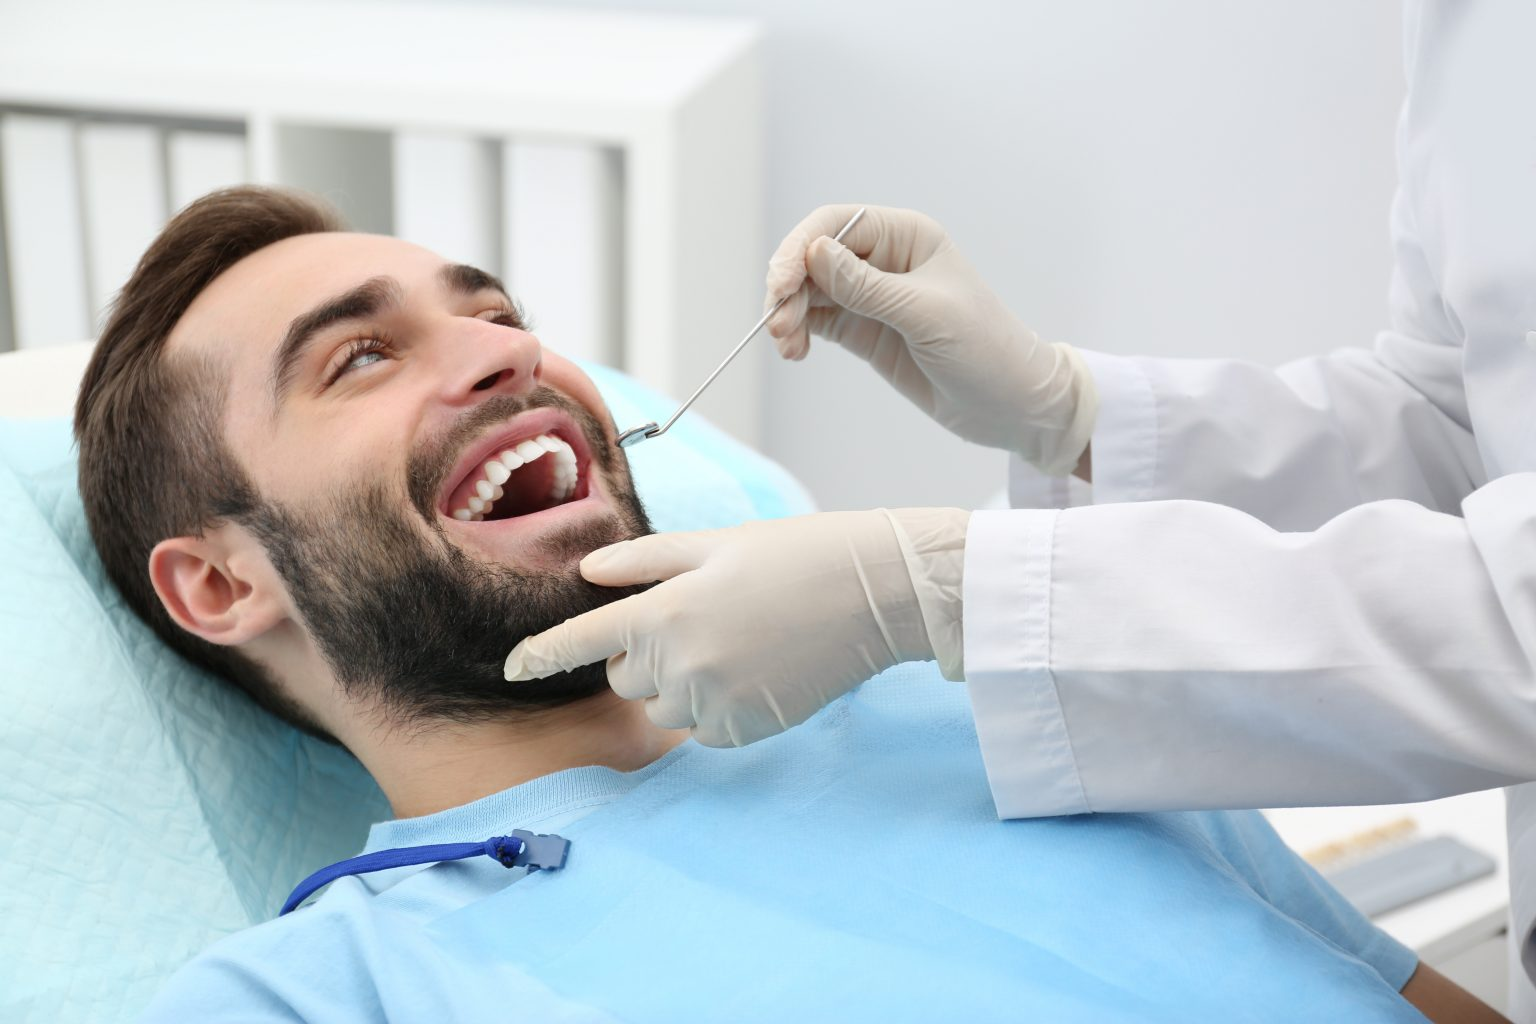 Dentist Examining Young Man's Teeth With Mirror In Hospital